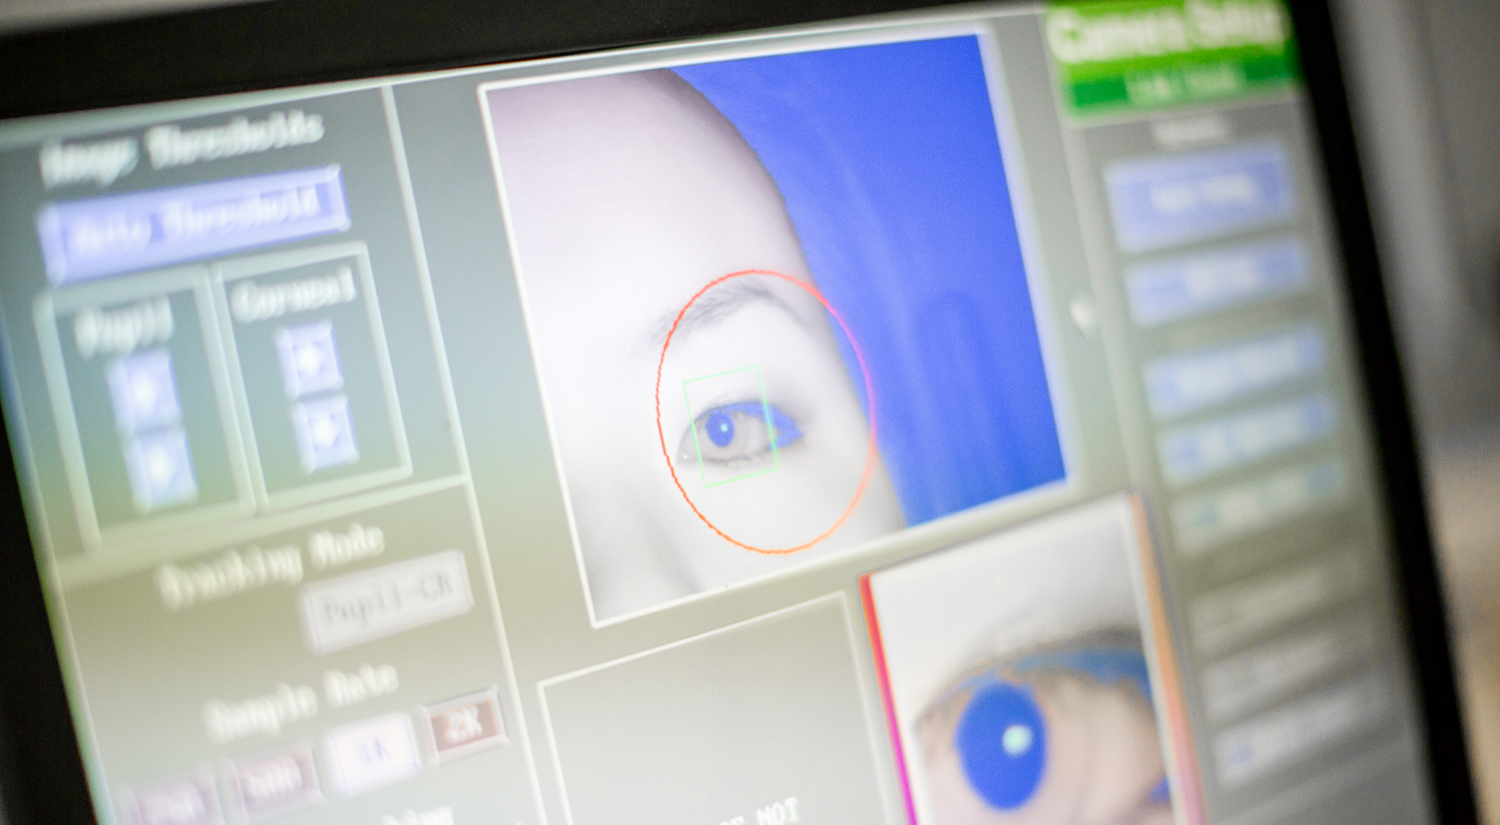 A photo of a computer screen which is showing results from an eye-tracking test. It includes a picture of the top right quarter of the subjects face, and a close-up shot of their eye.